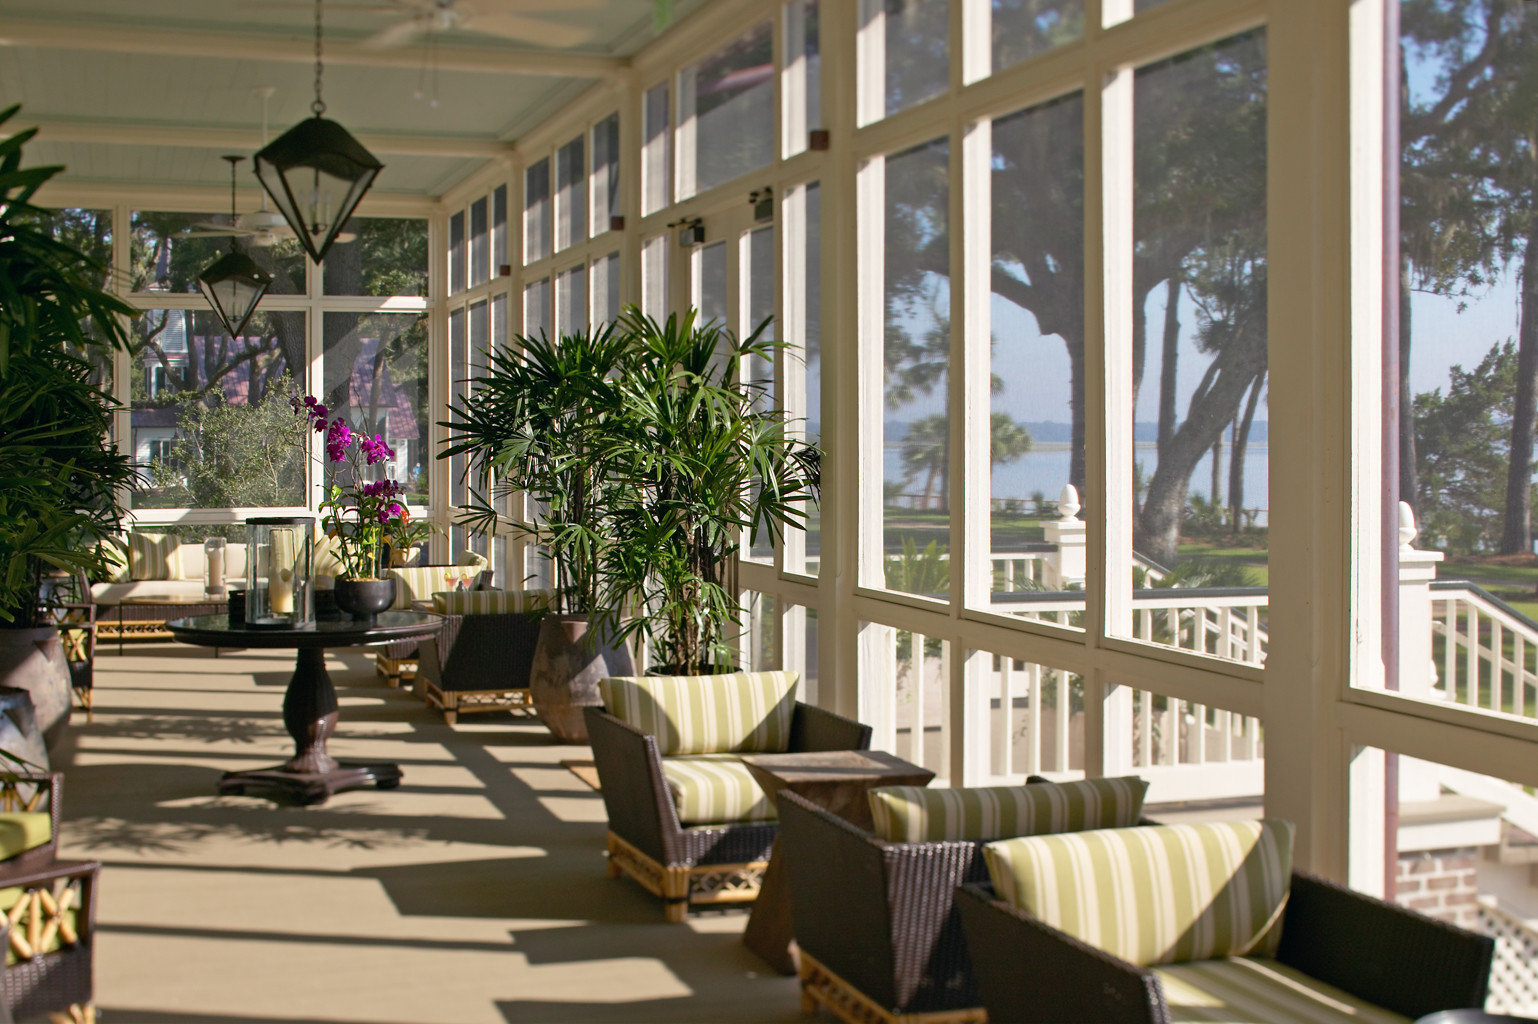 Country Inn Patio Scenic views Waterfront tree building Lobby porch condominium restaurant home Courtyard plaza outdoor structure orangery